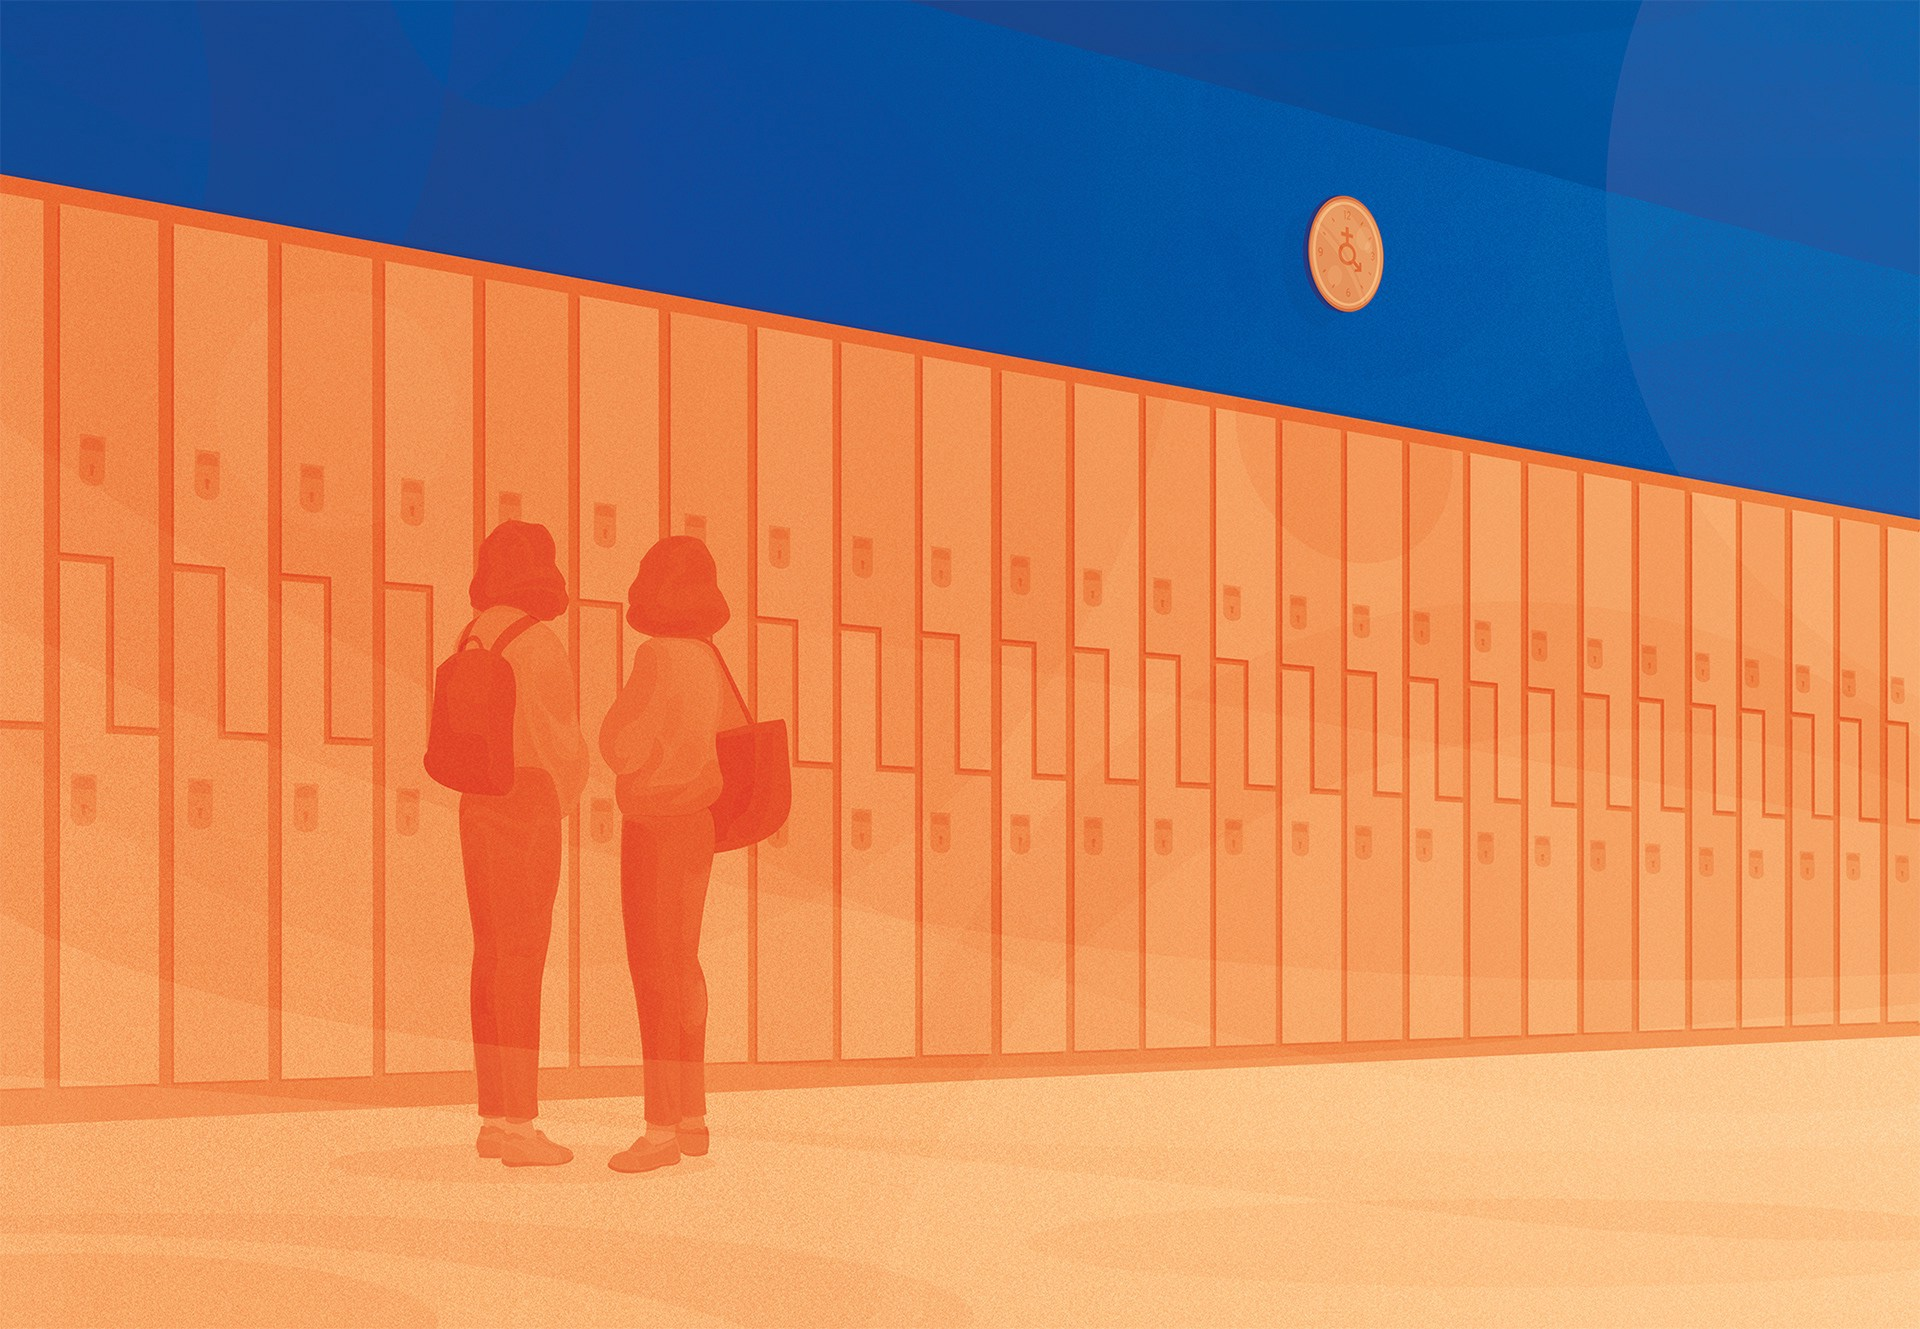 Mirrored girl on a row of lockers stare at the clock on the wall.